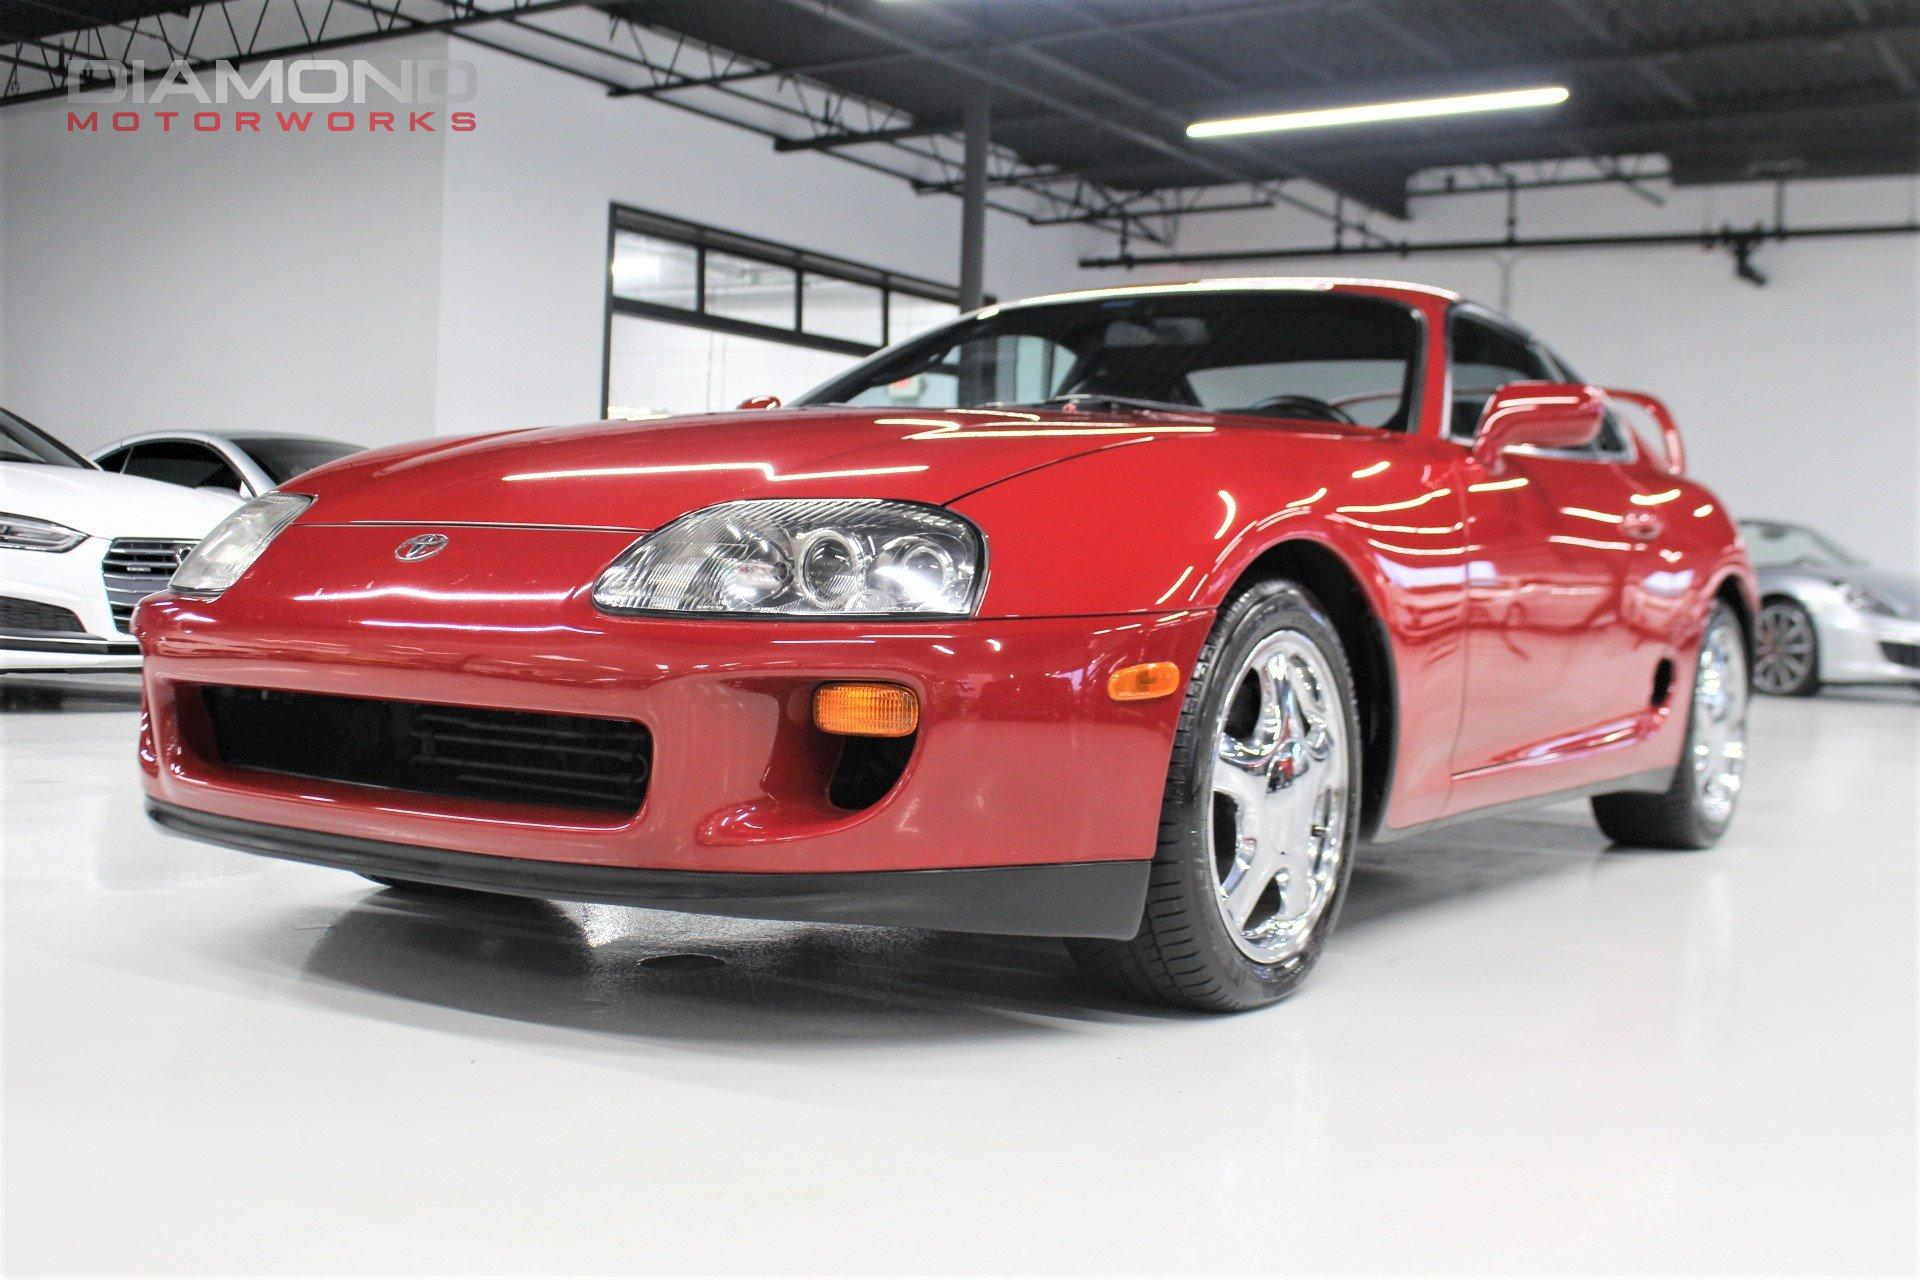 1994 toyota supra twin turbo stock 010494 for sale near lisle il il toyota dealer. Black Bedroom Furniture Sets. Home Design Ideas